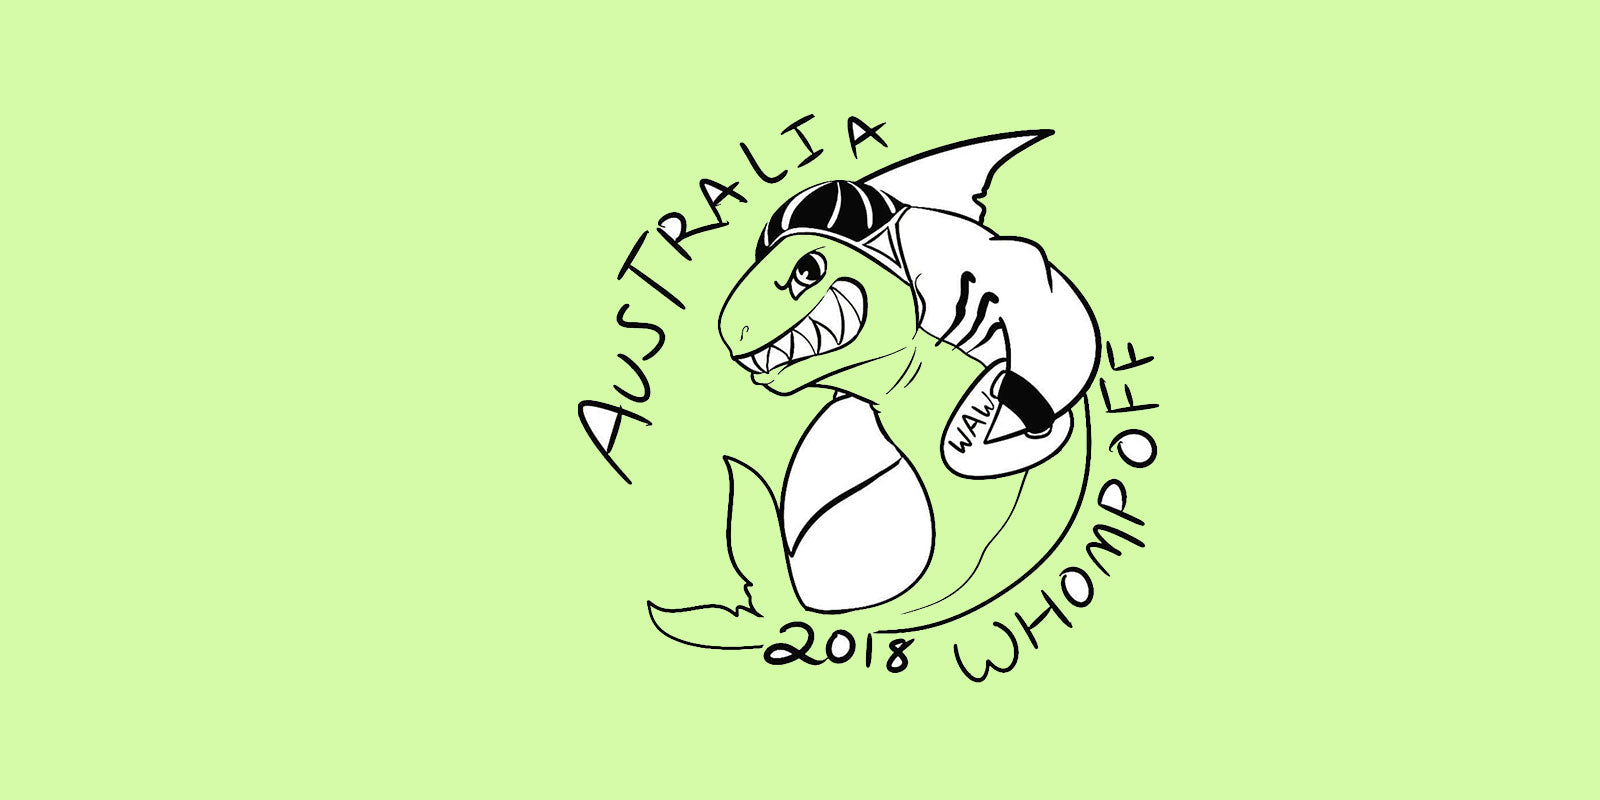 Whomp off Australia Sept 15th 2018 TEAM FOCUSED BODYSURFING EVENT